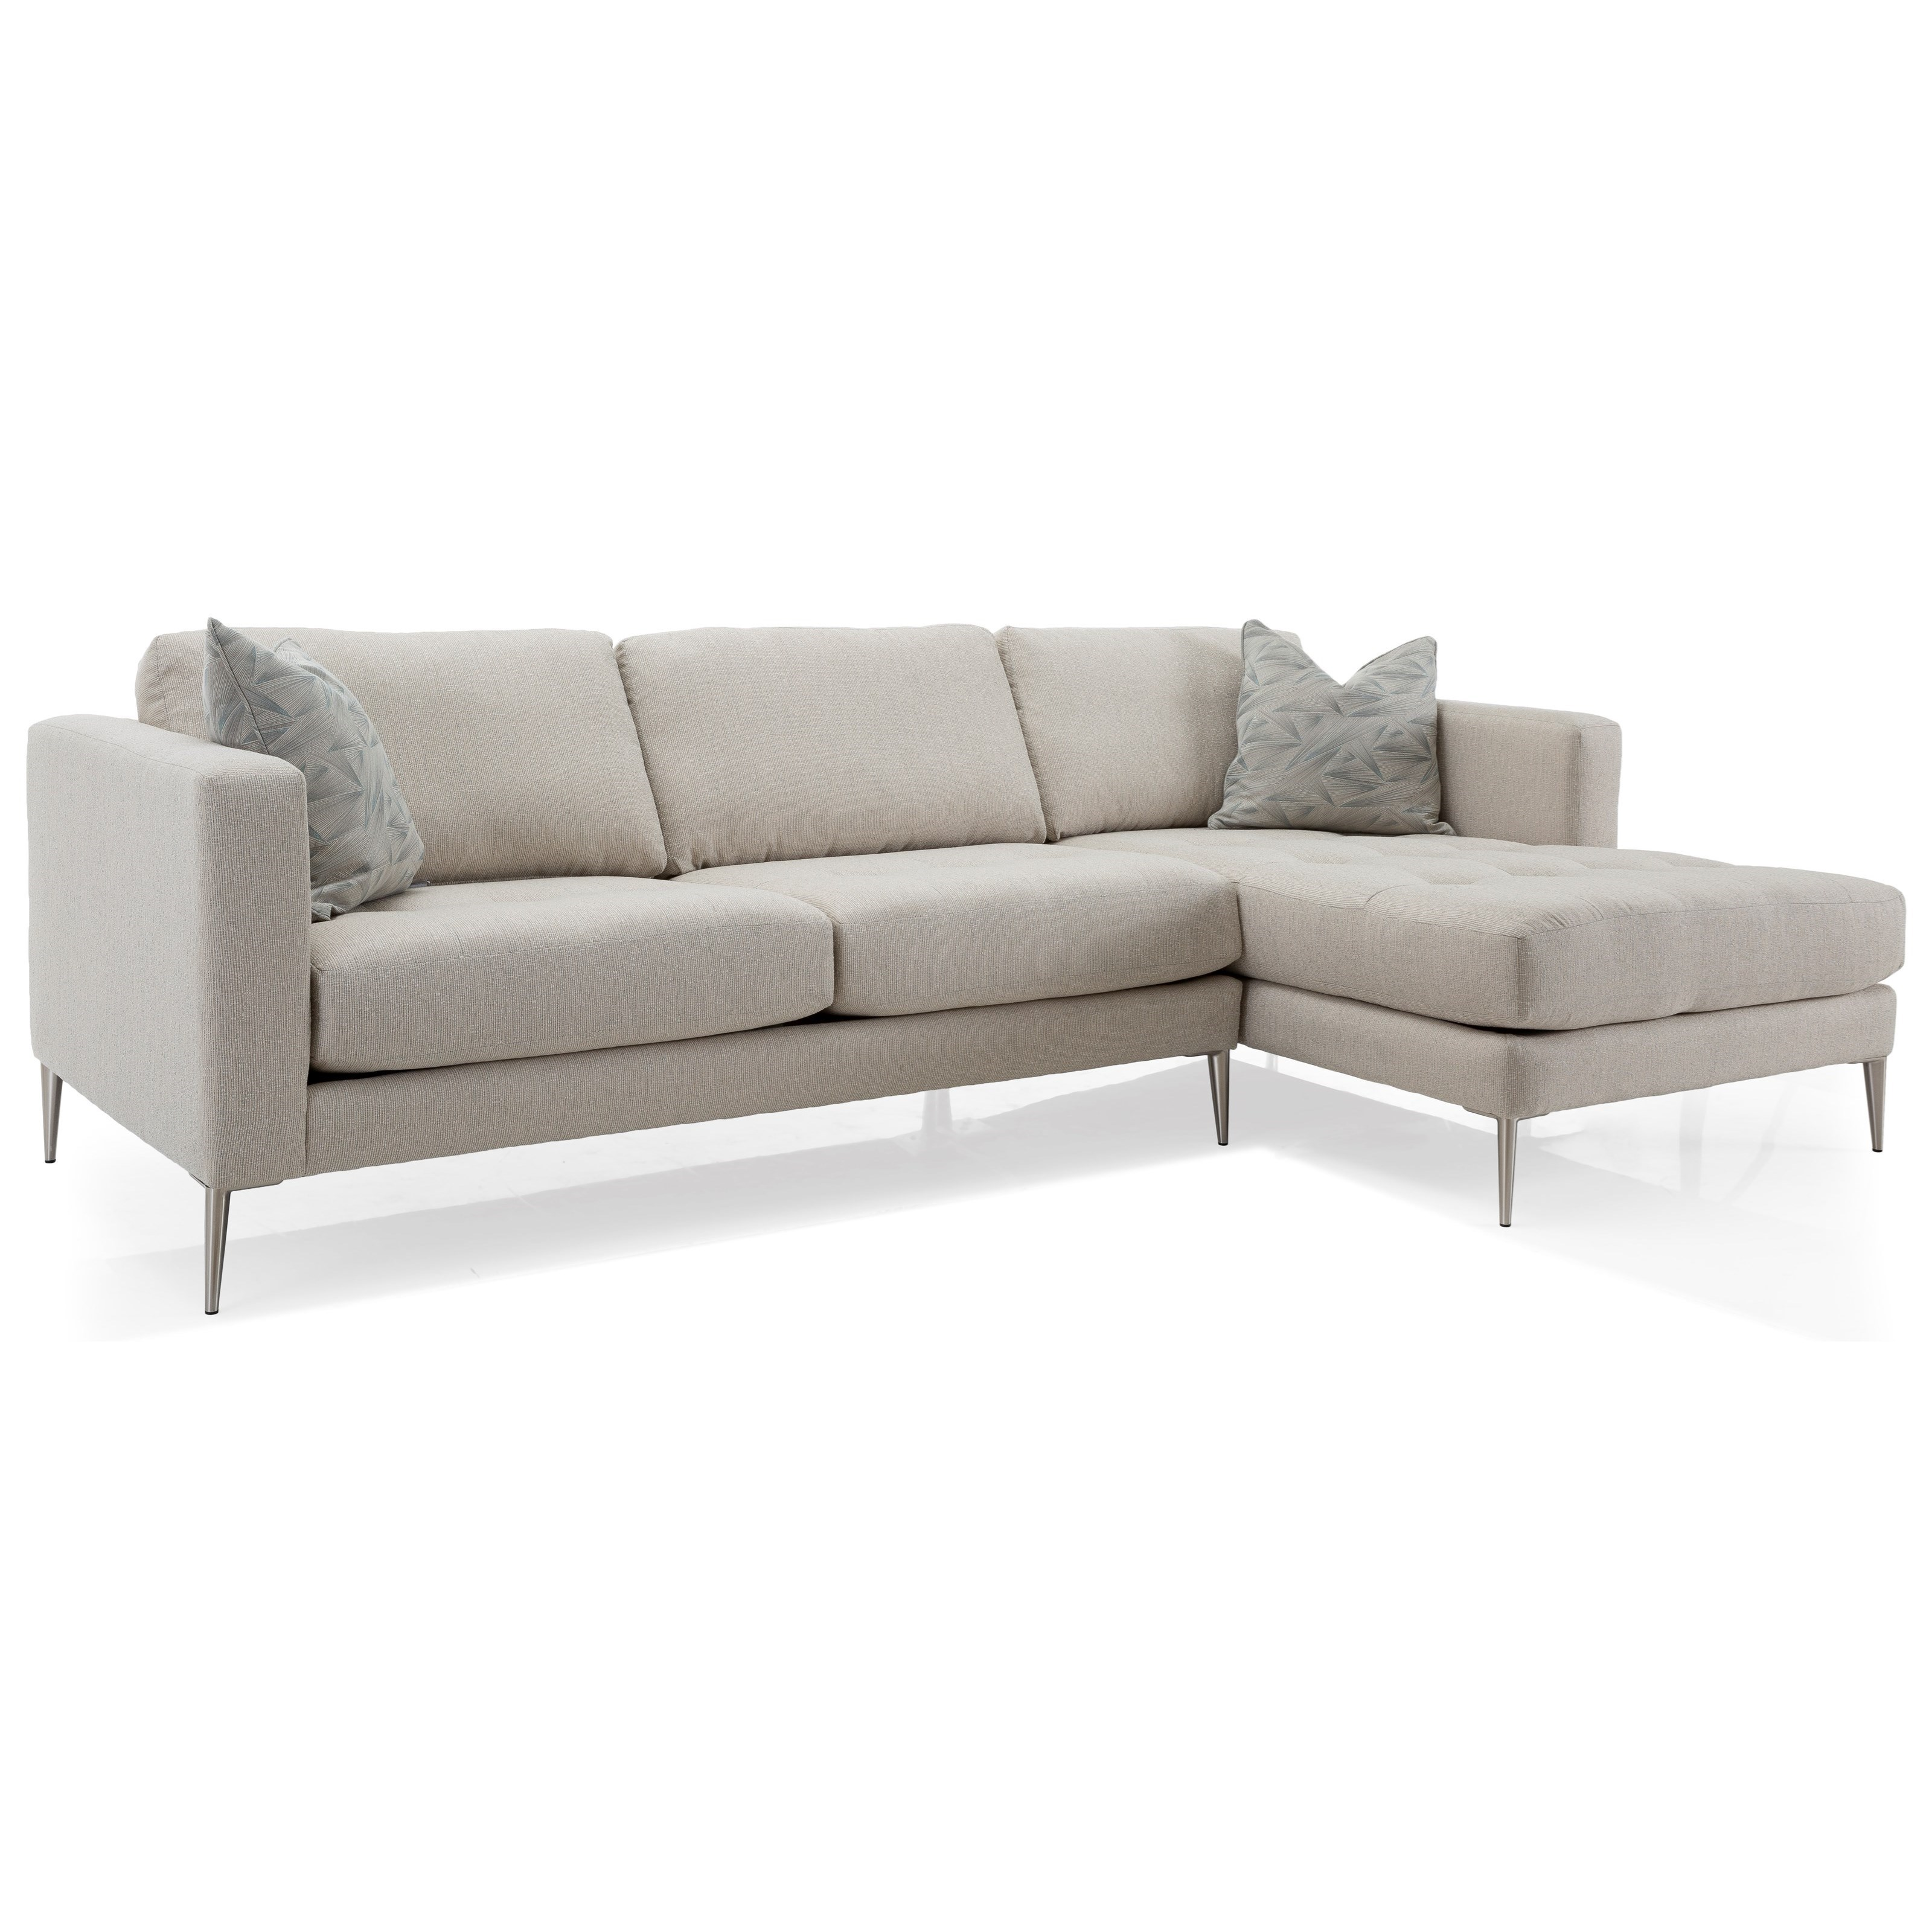 3795 Chaise Sofa by Decor-Rest at Rooms for Less